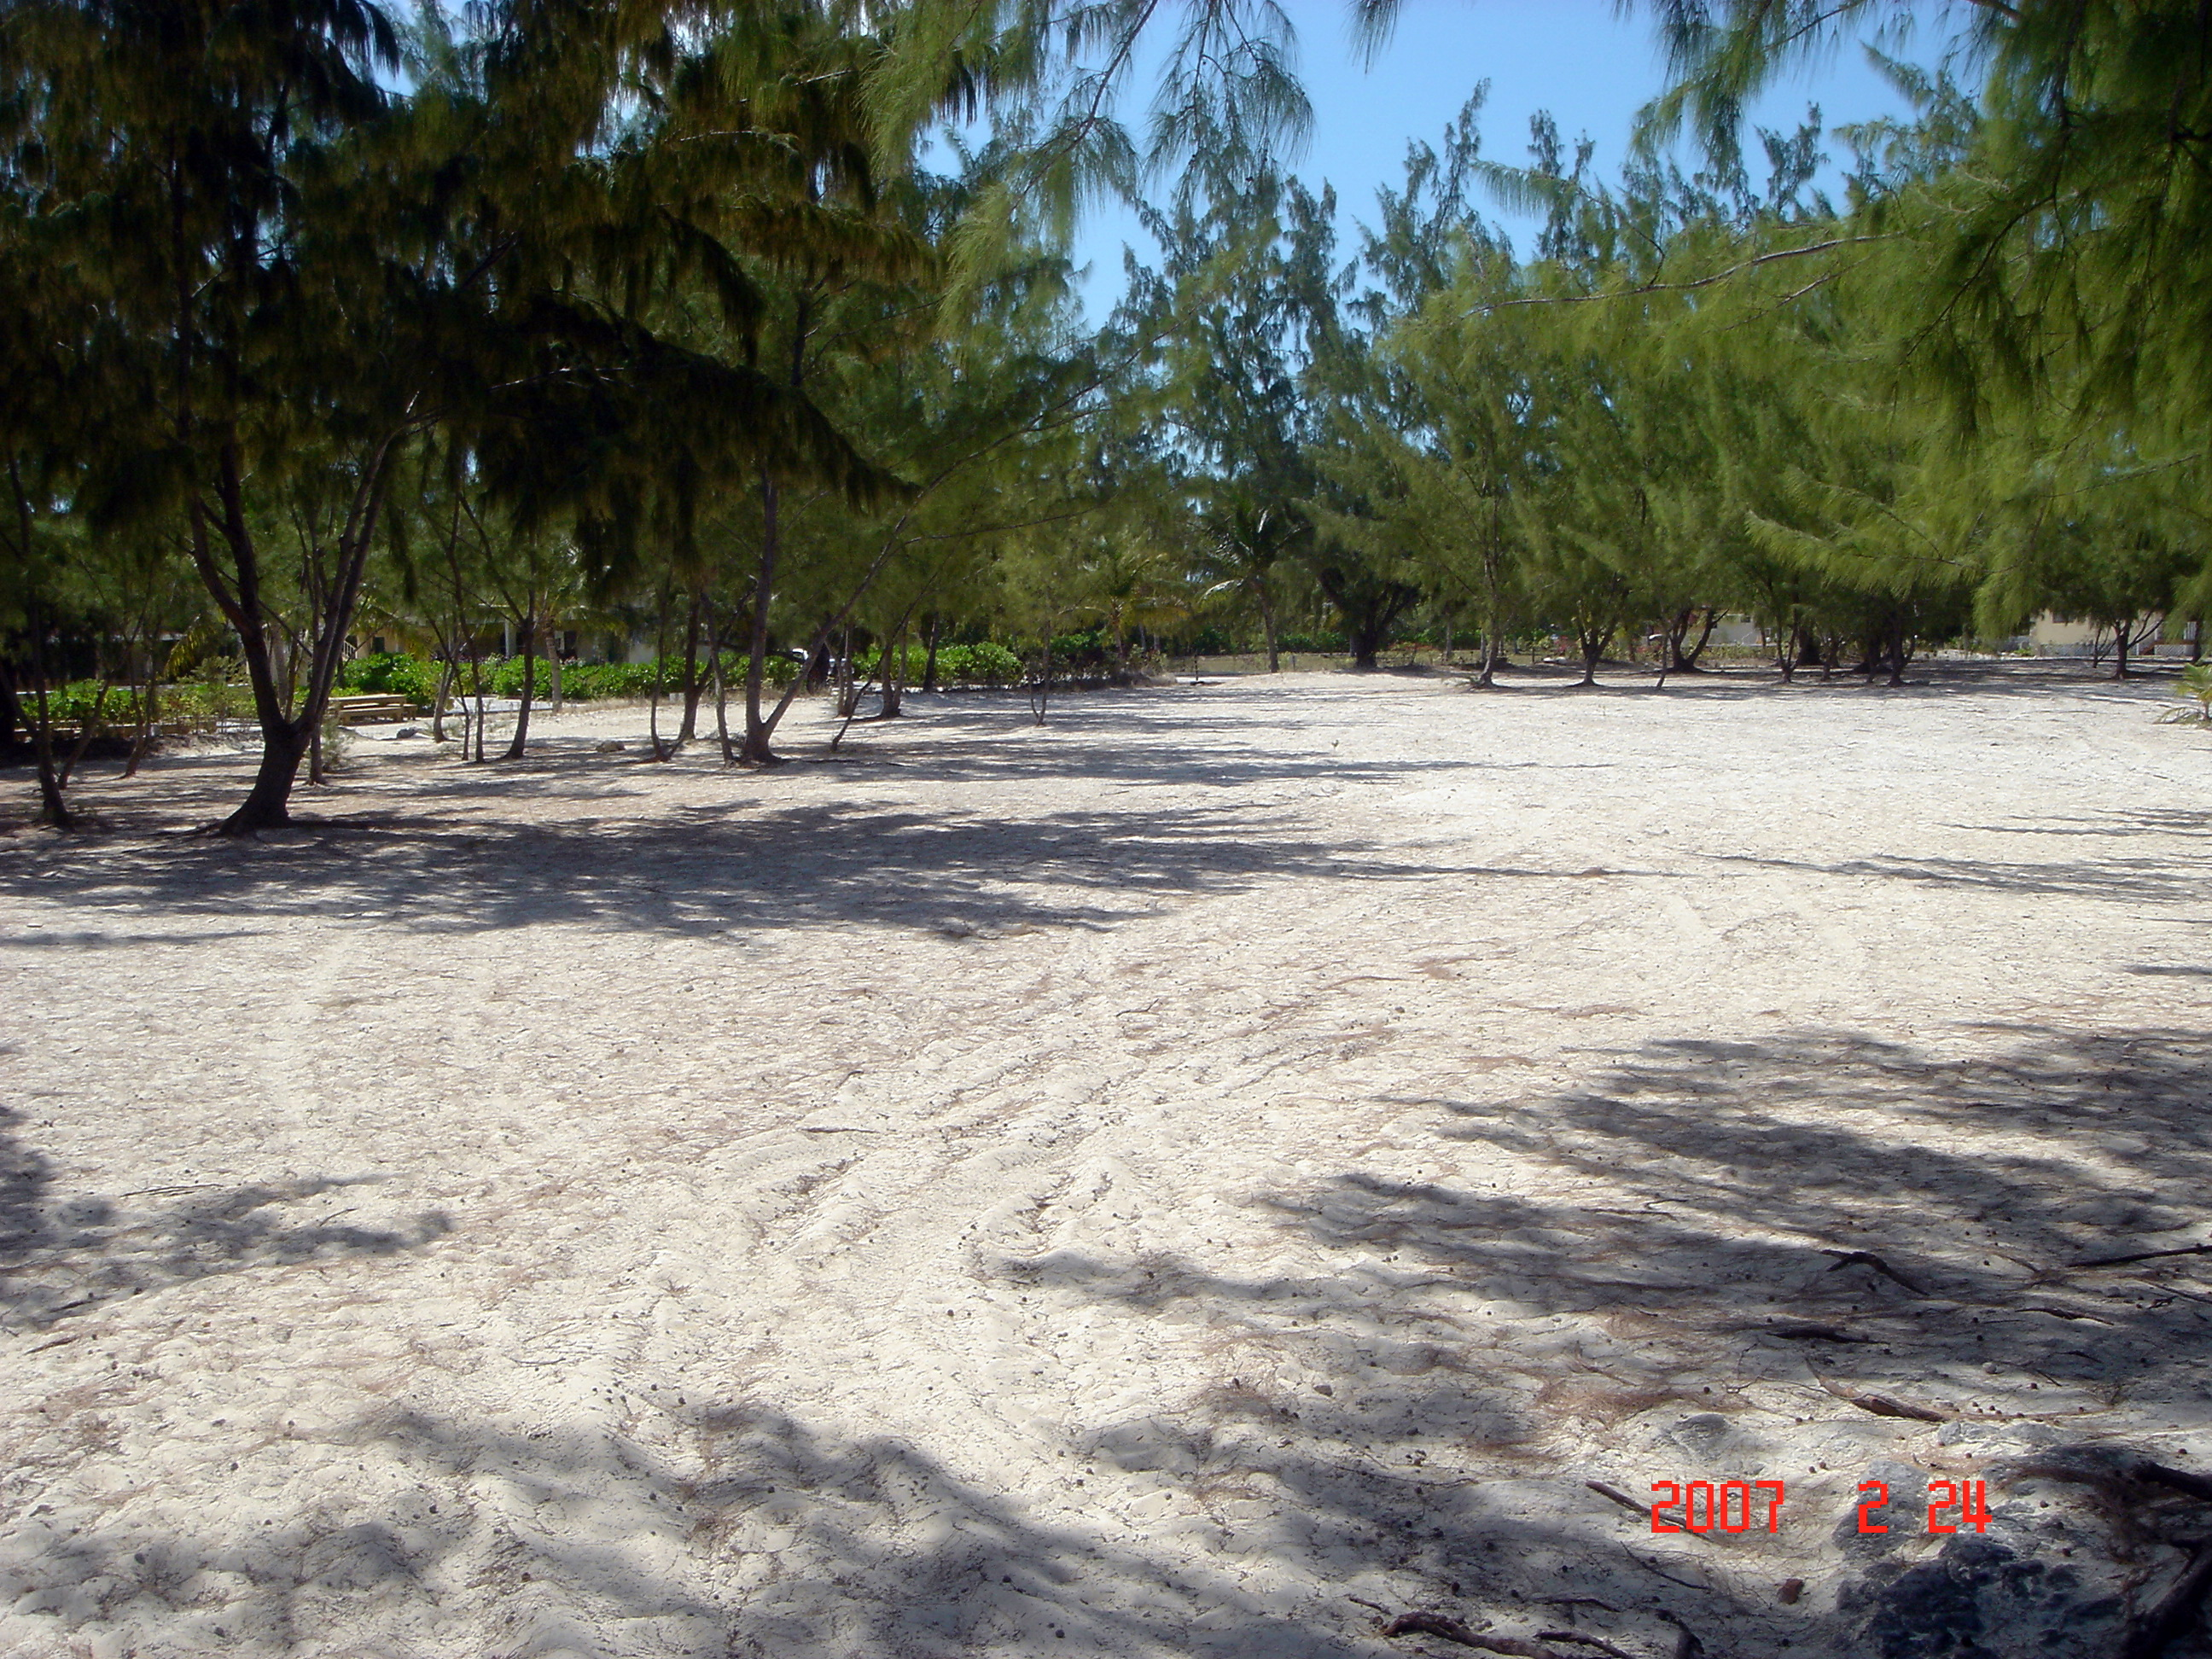 Beaches2007Feb24-14.jpg